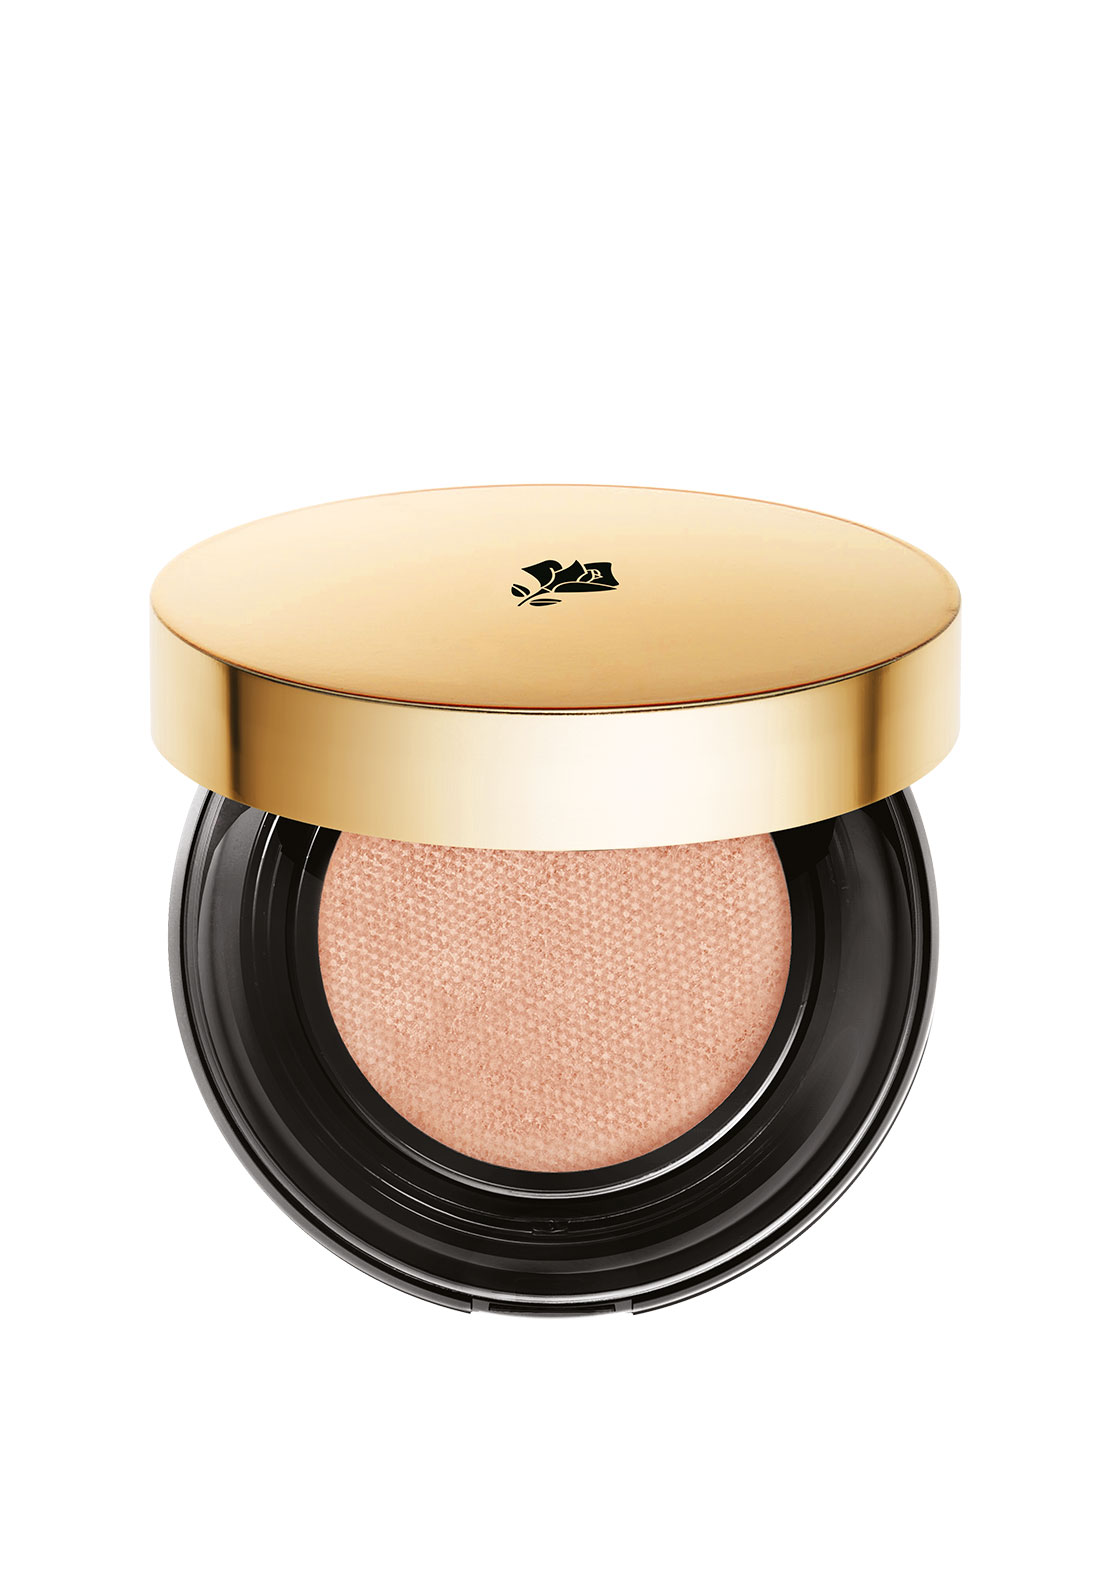 Lancome Teint Idole Ultra Cushion Compact Foundation, Beige Rose